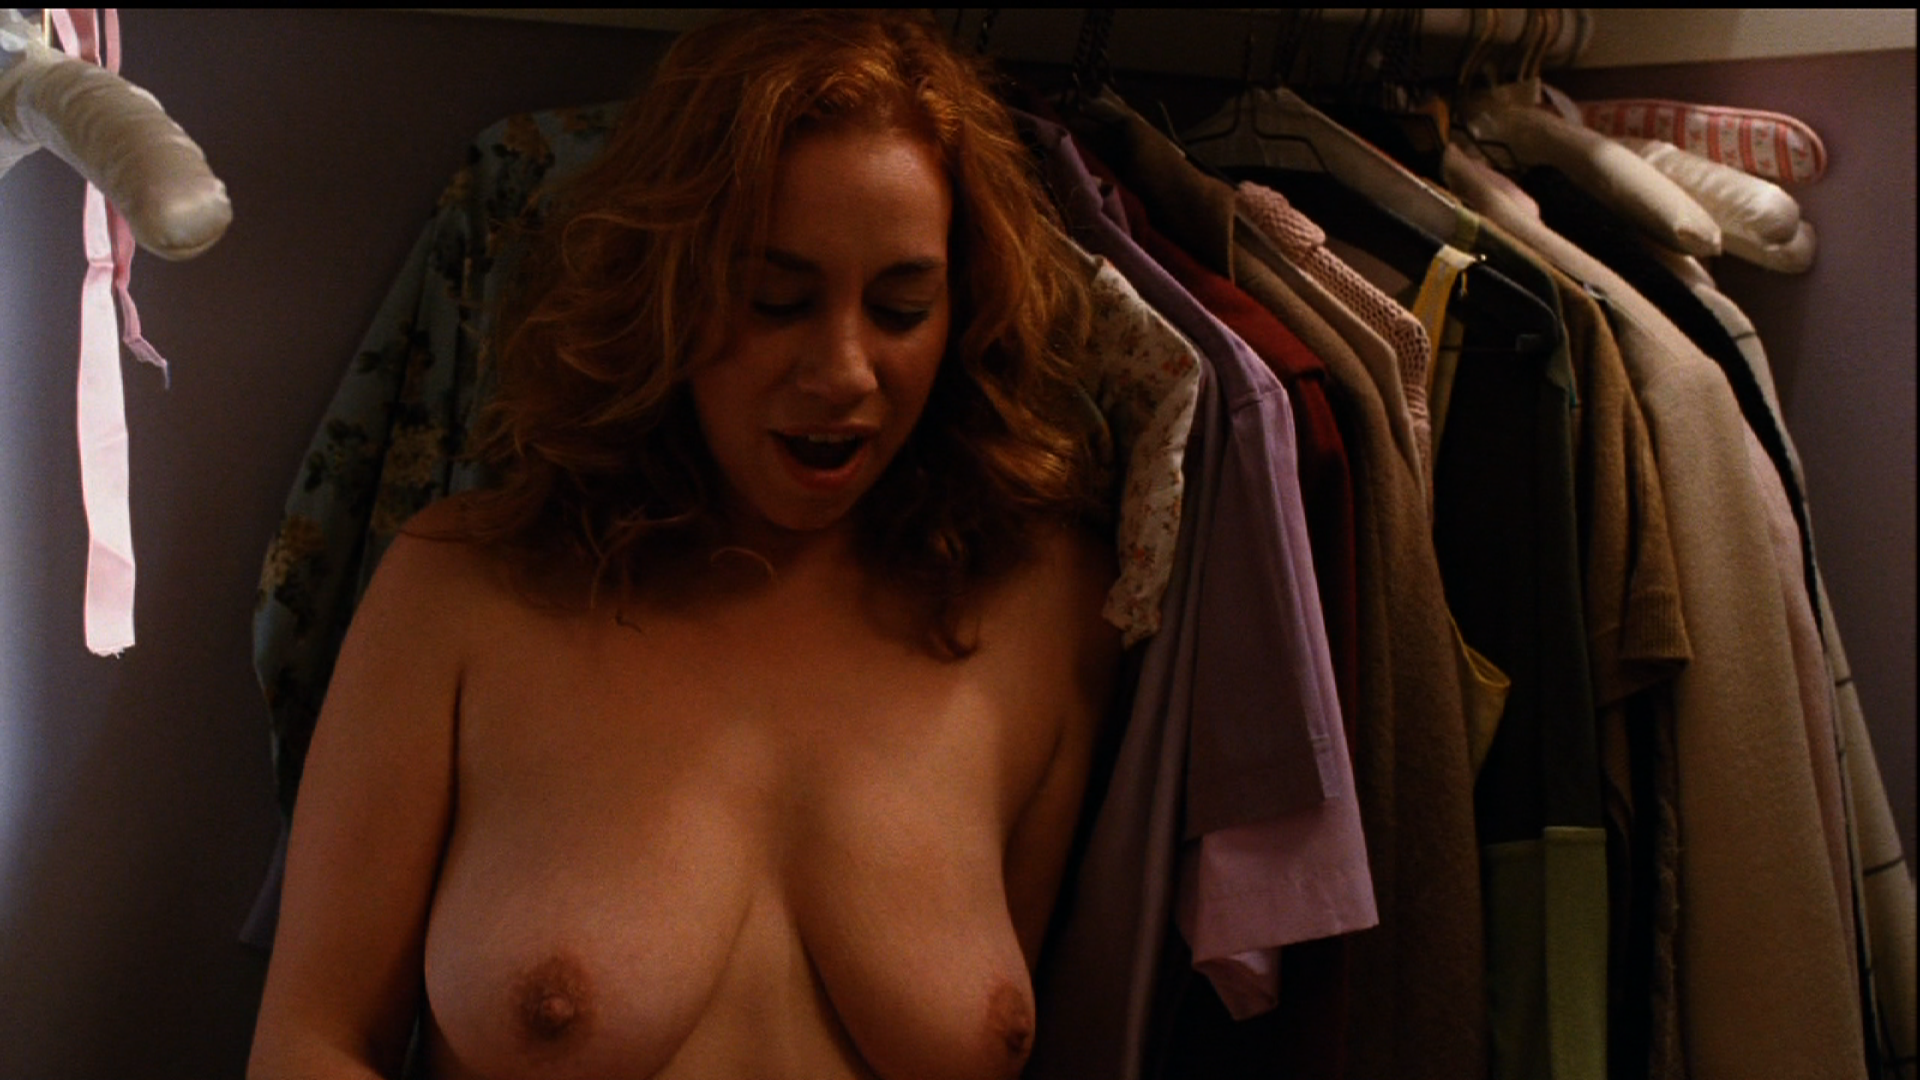 image Rebecca creskoff hot sex scene and full frontal nudity